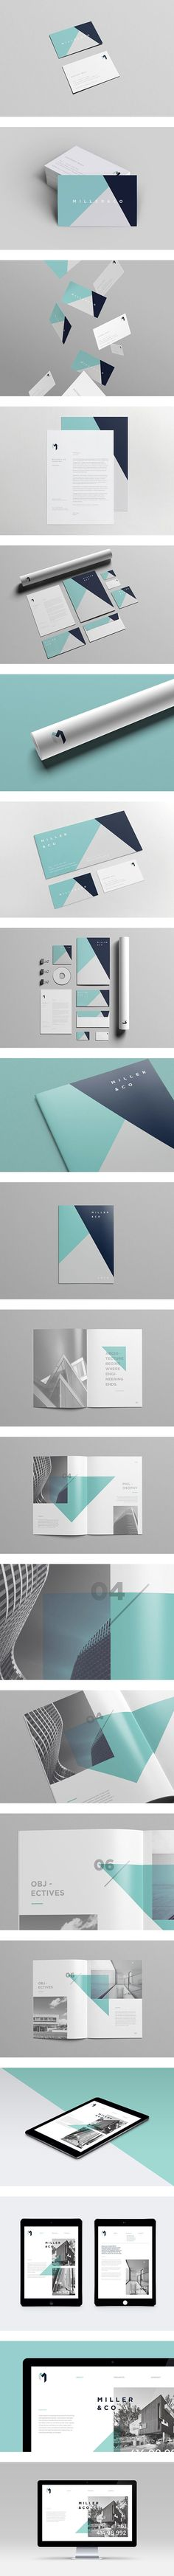 Miller & Co identity by James Fitzgerald